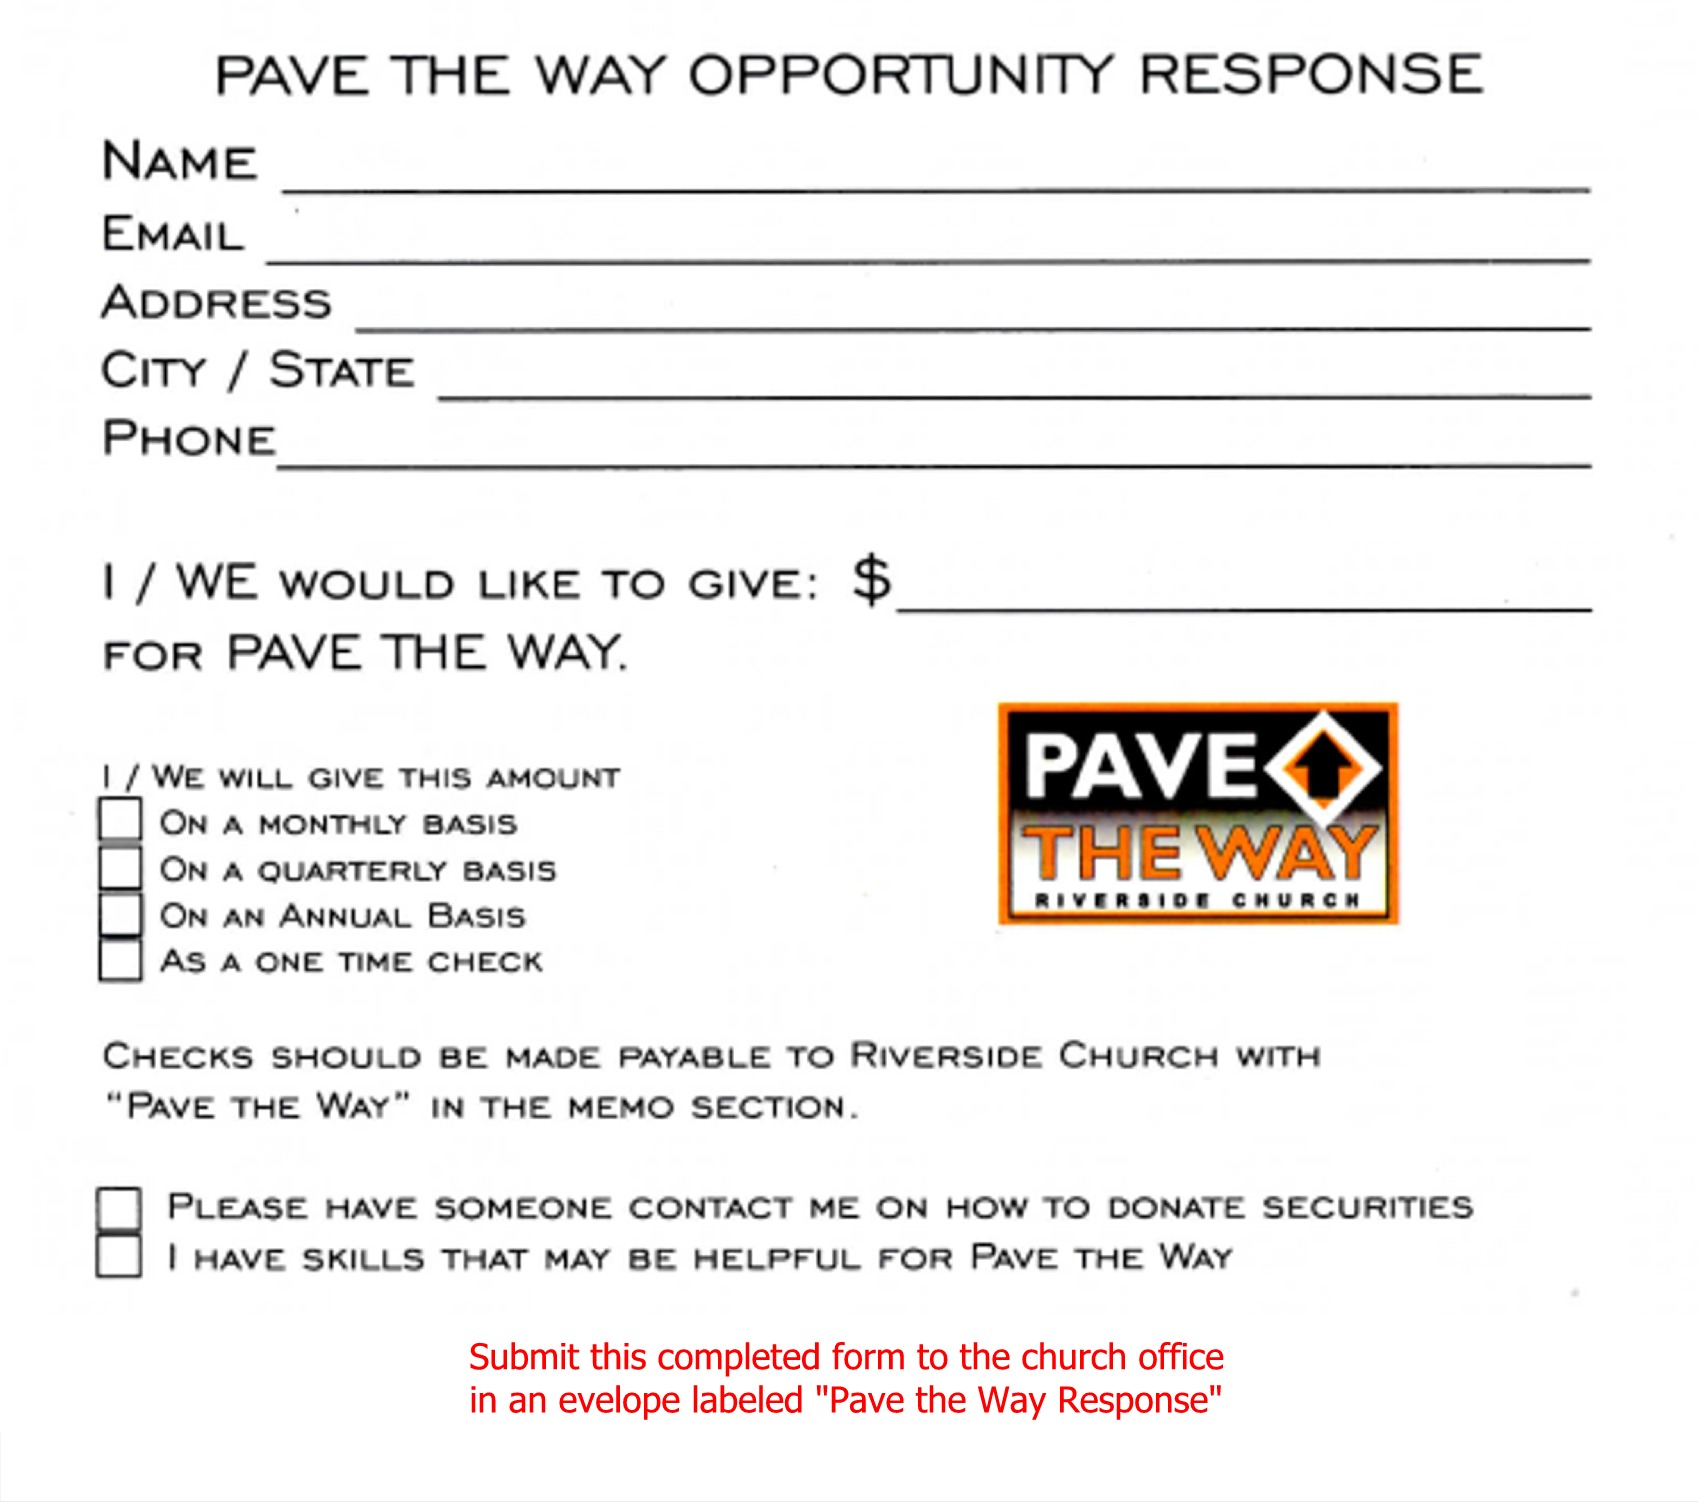 PTW Opportunity Response